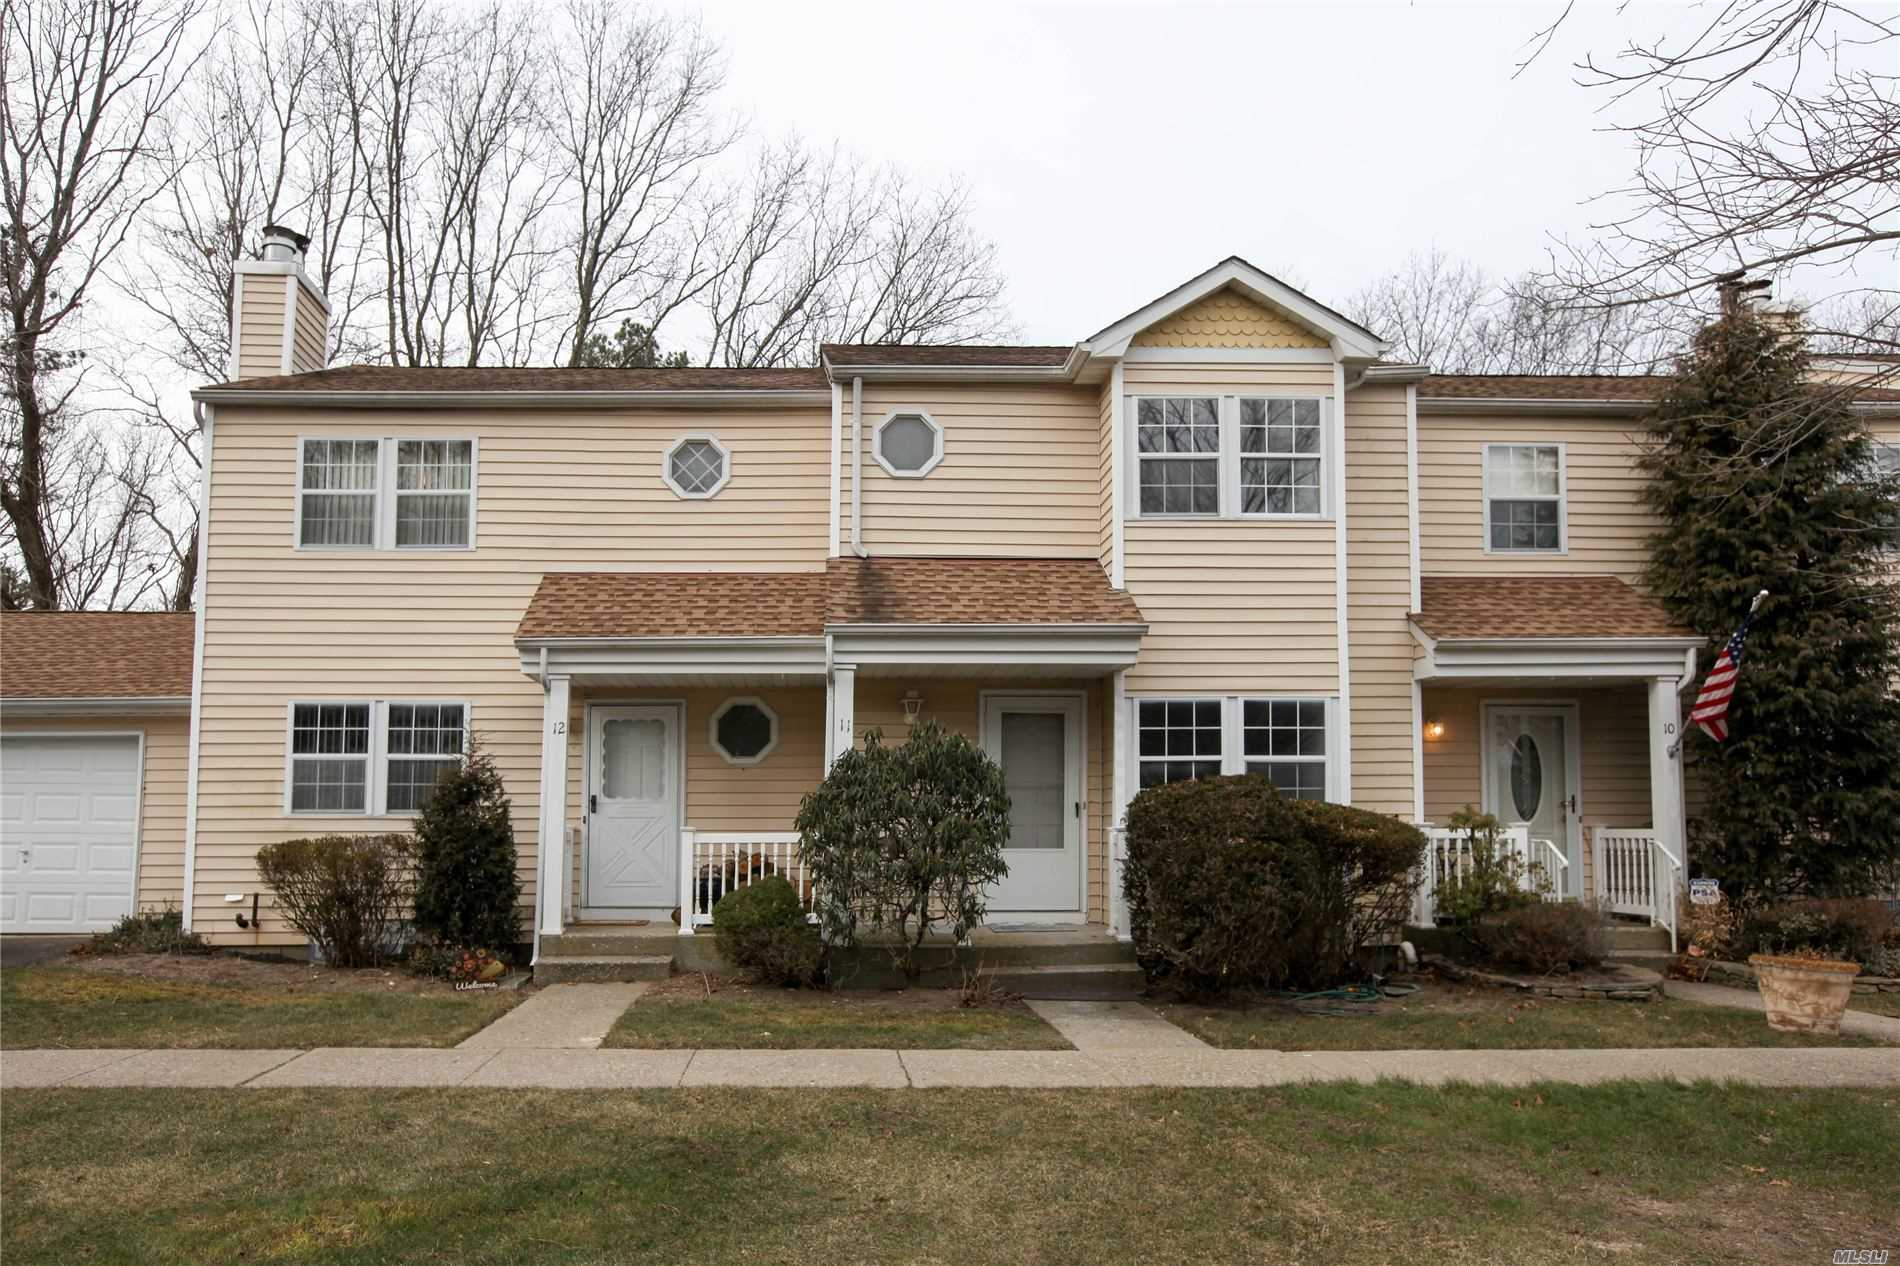 11 Hopkins Cmns - Yaphank, New York